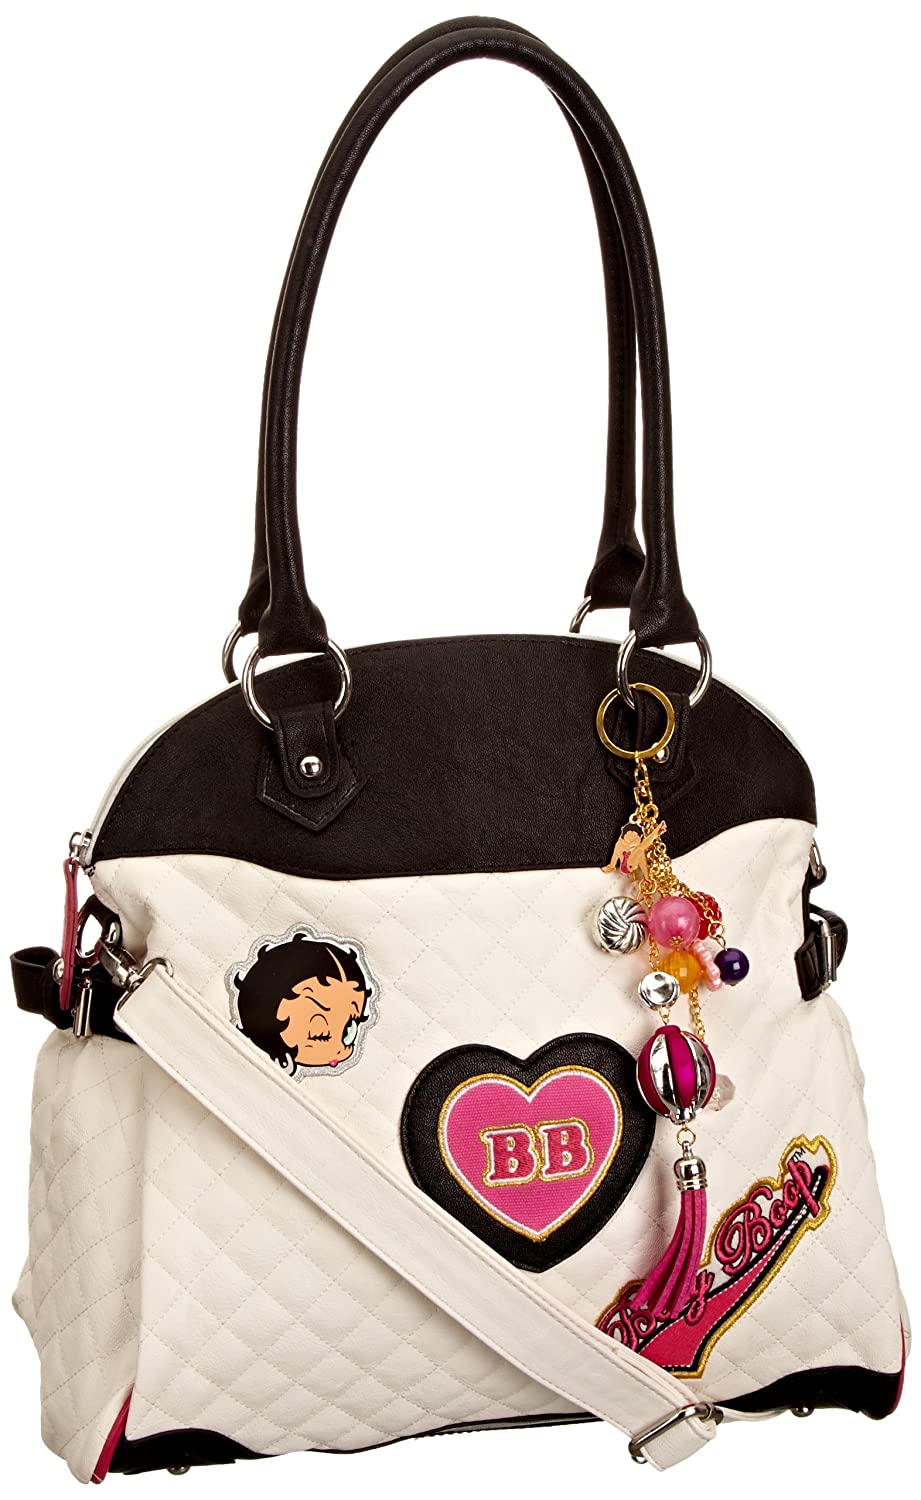 Betty Boop Girl Time Women's Quilted Handbag